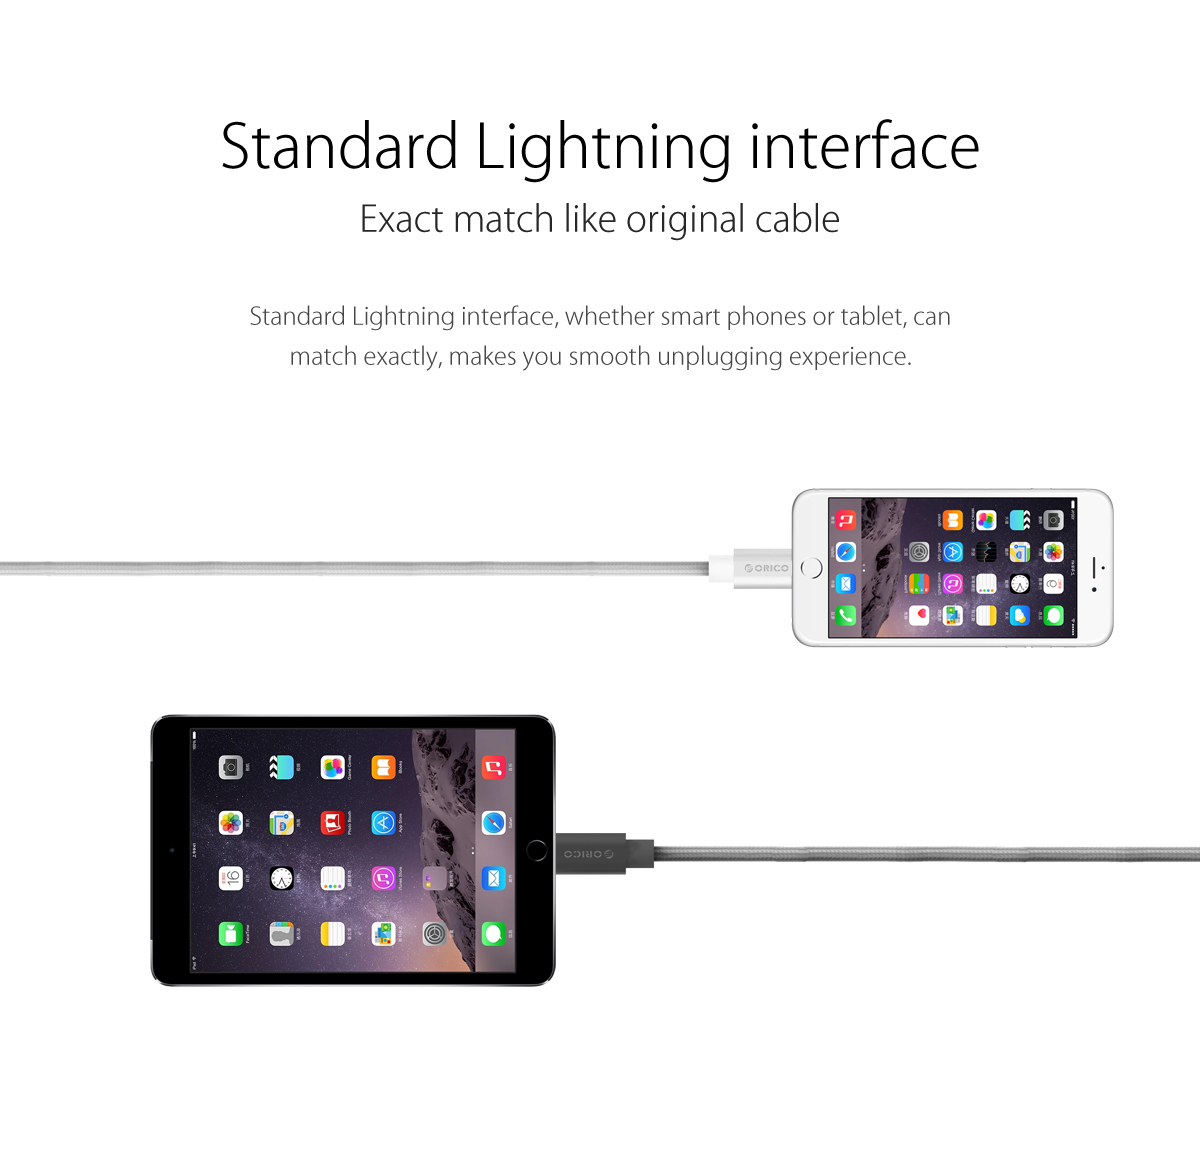 standard lightning interface